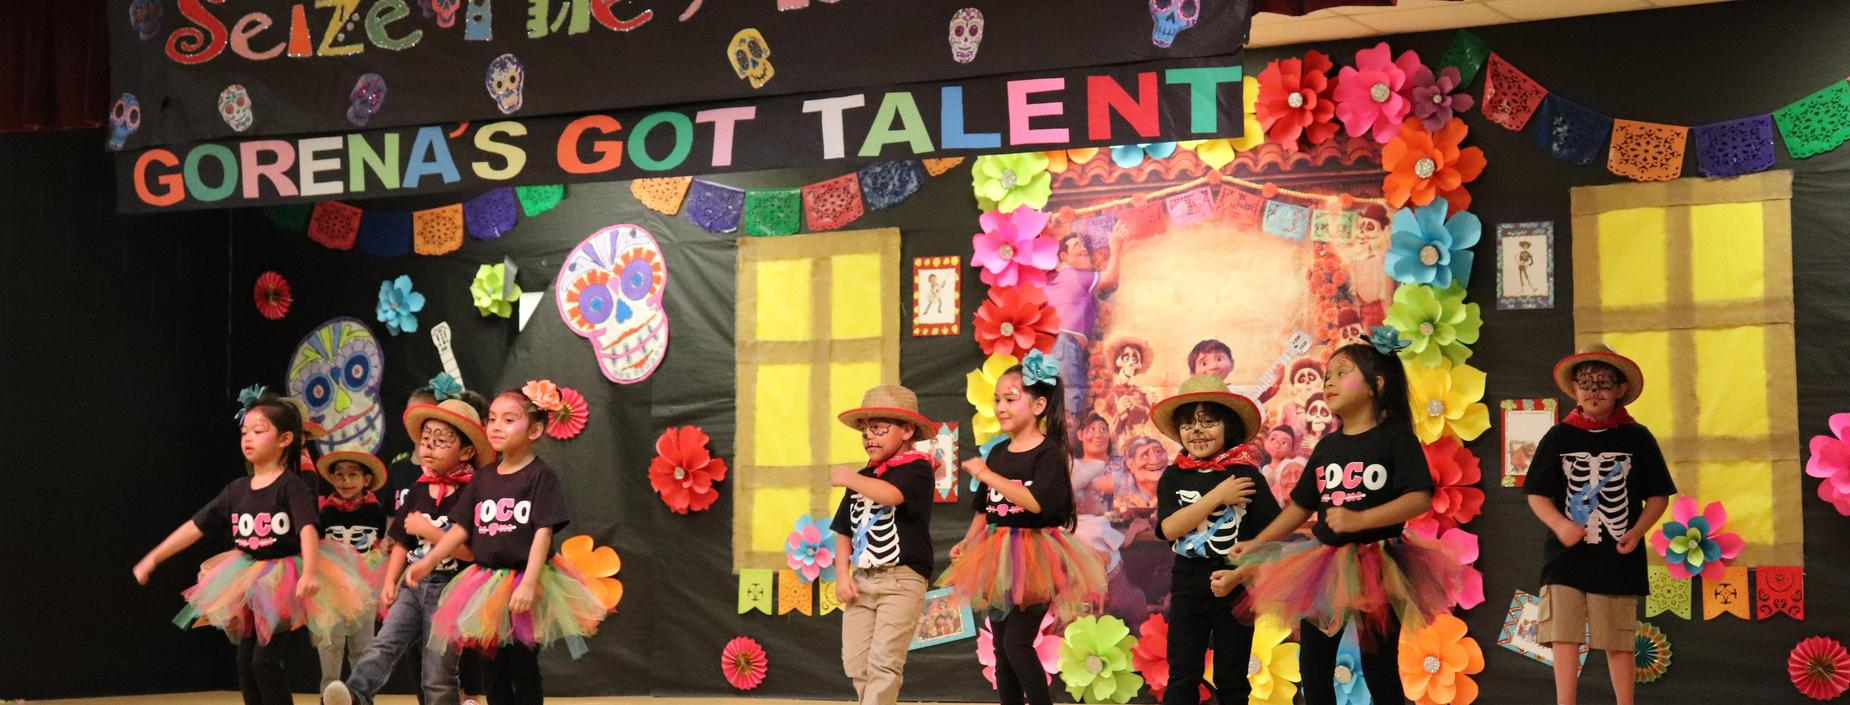 picture of kids at talent show